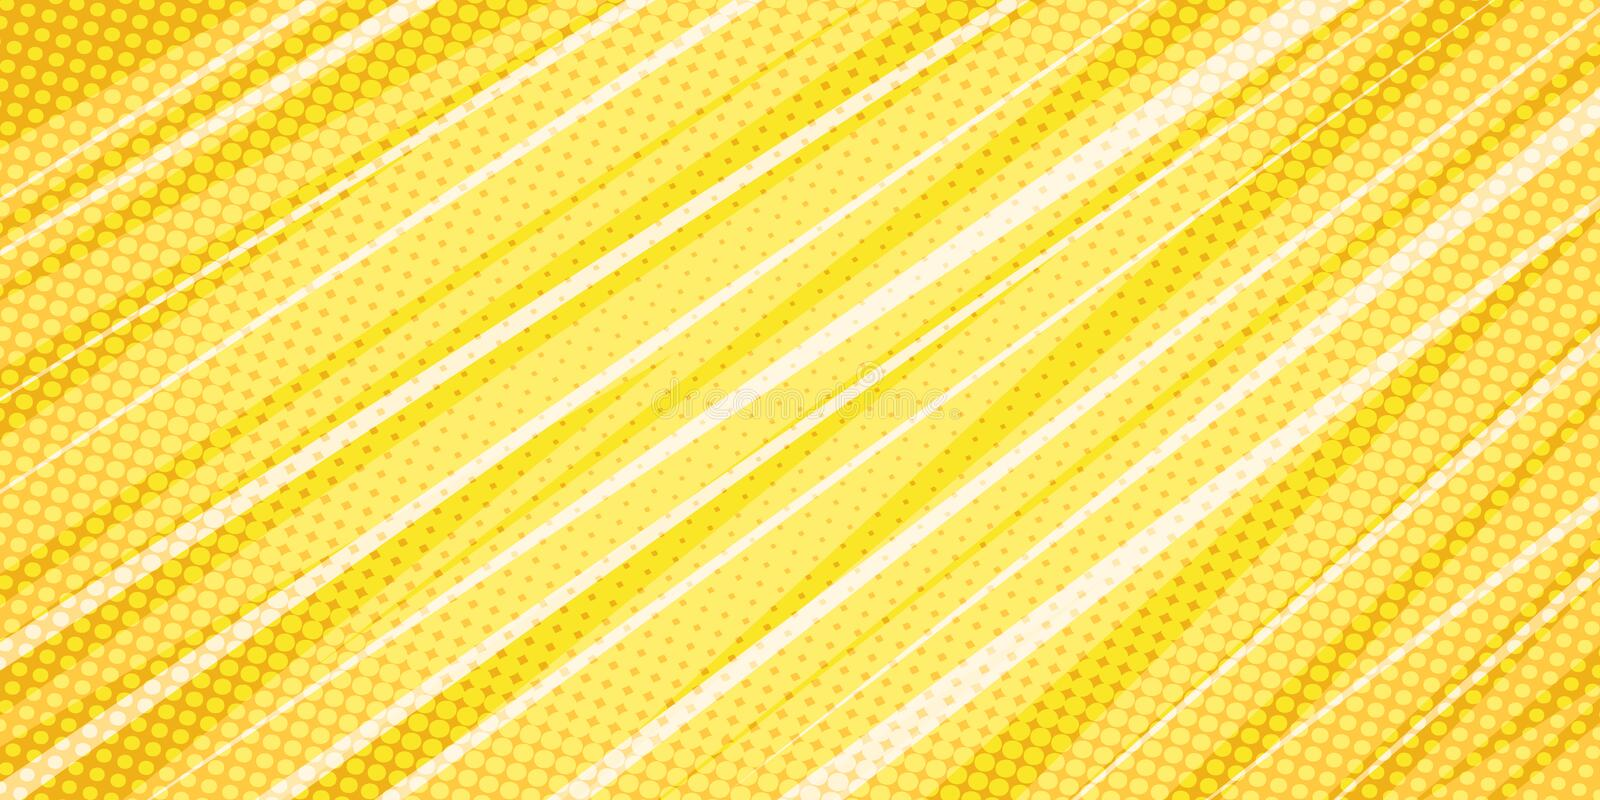 Yellow linear abstract background stock illustration